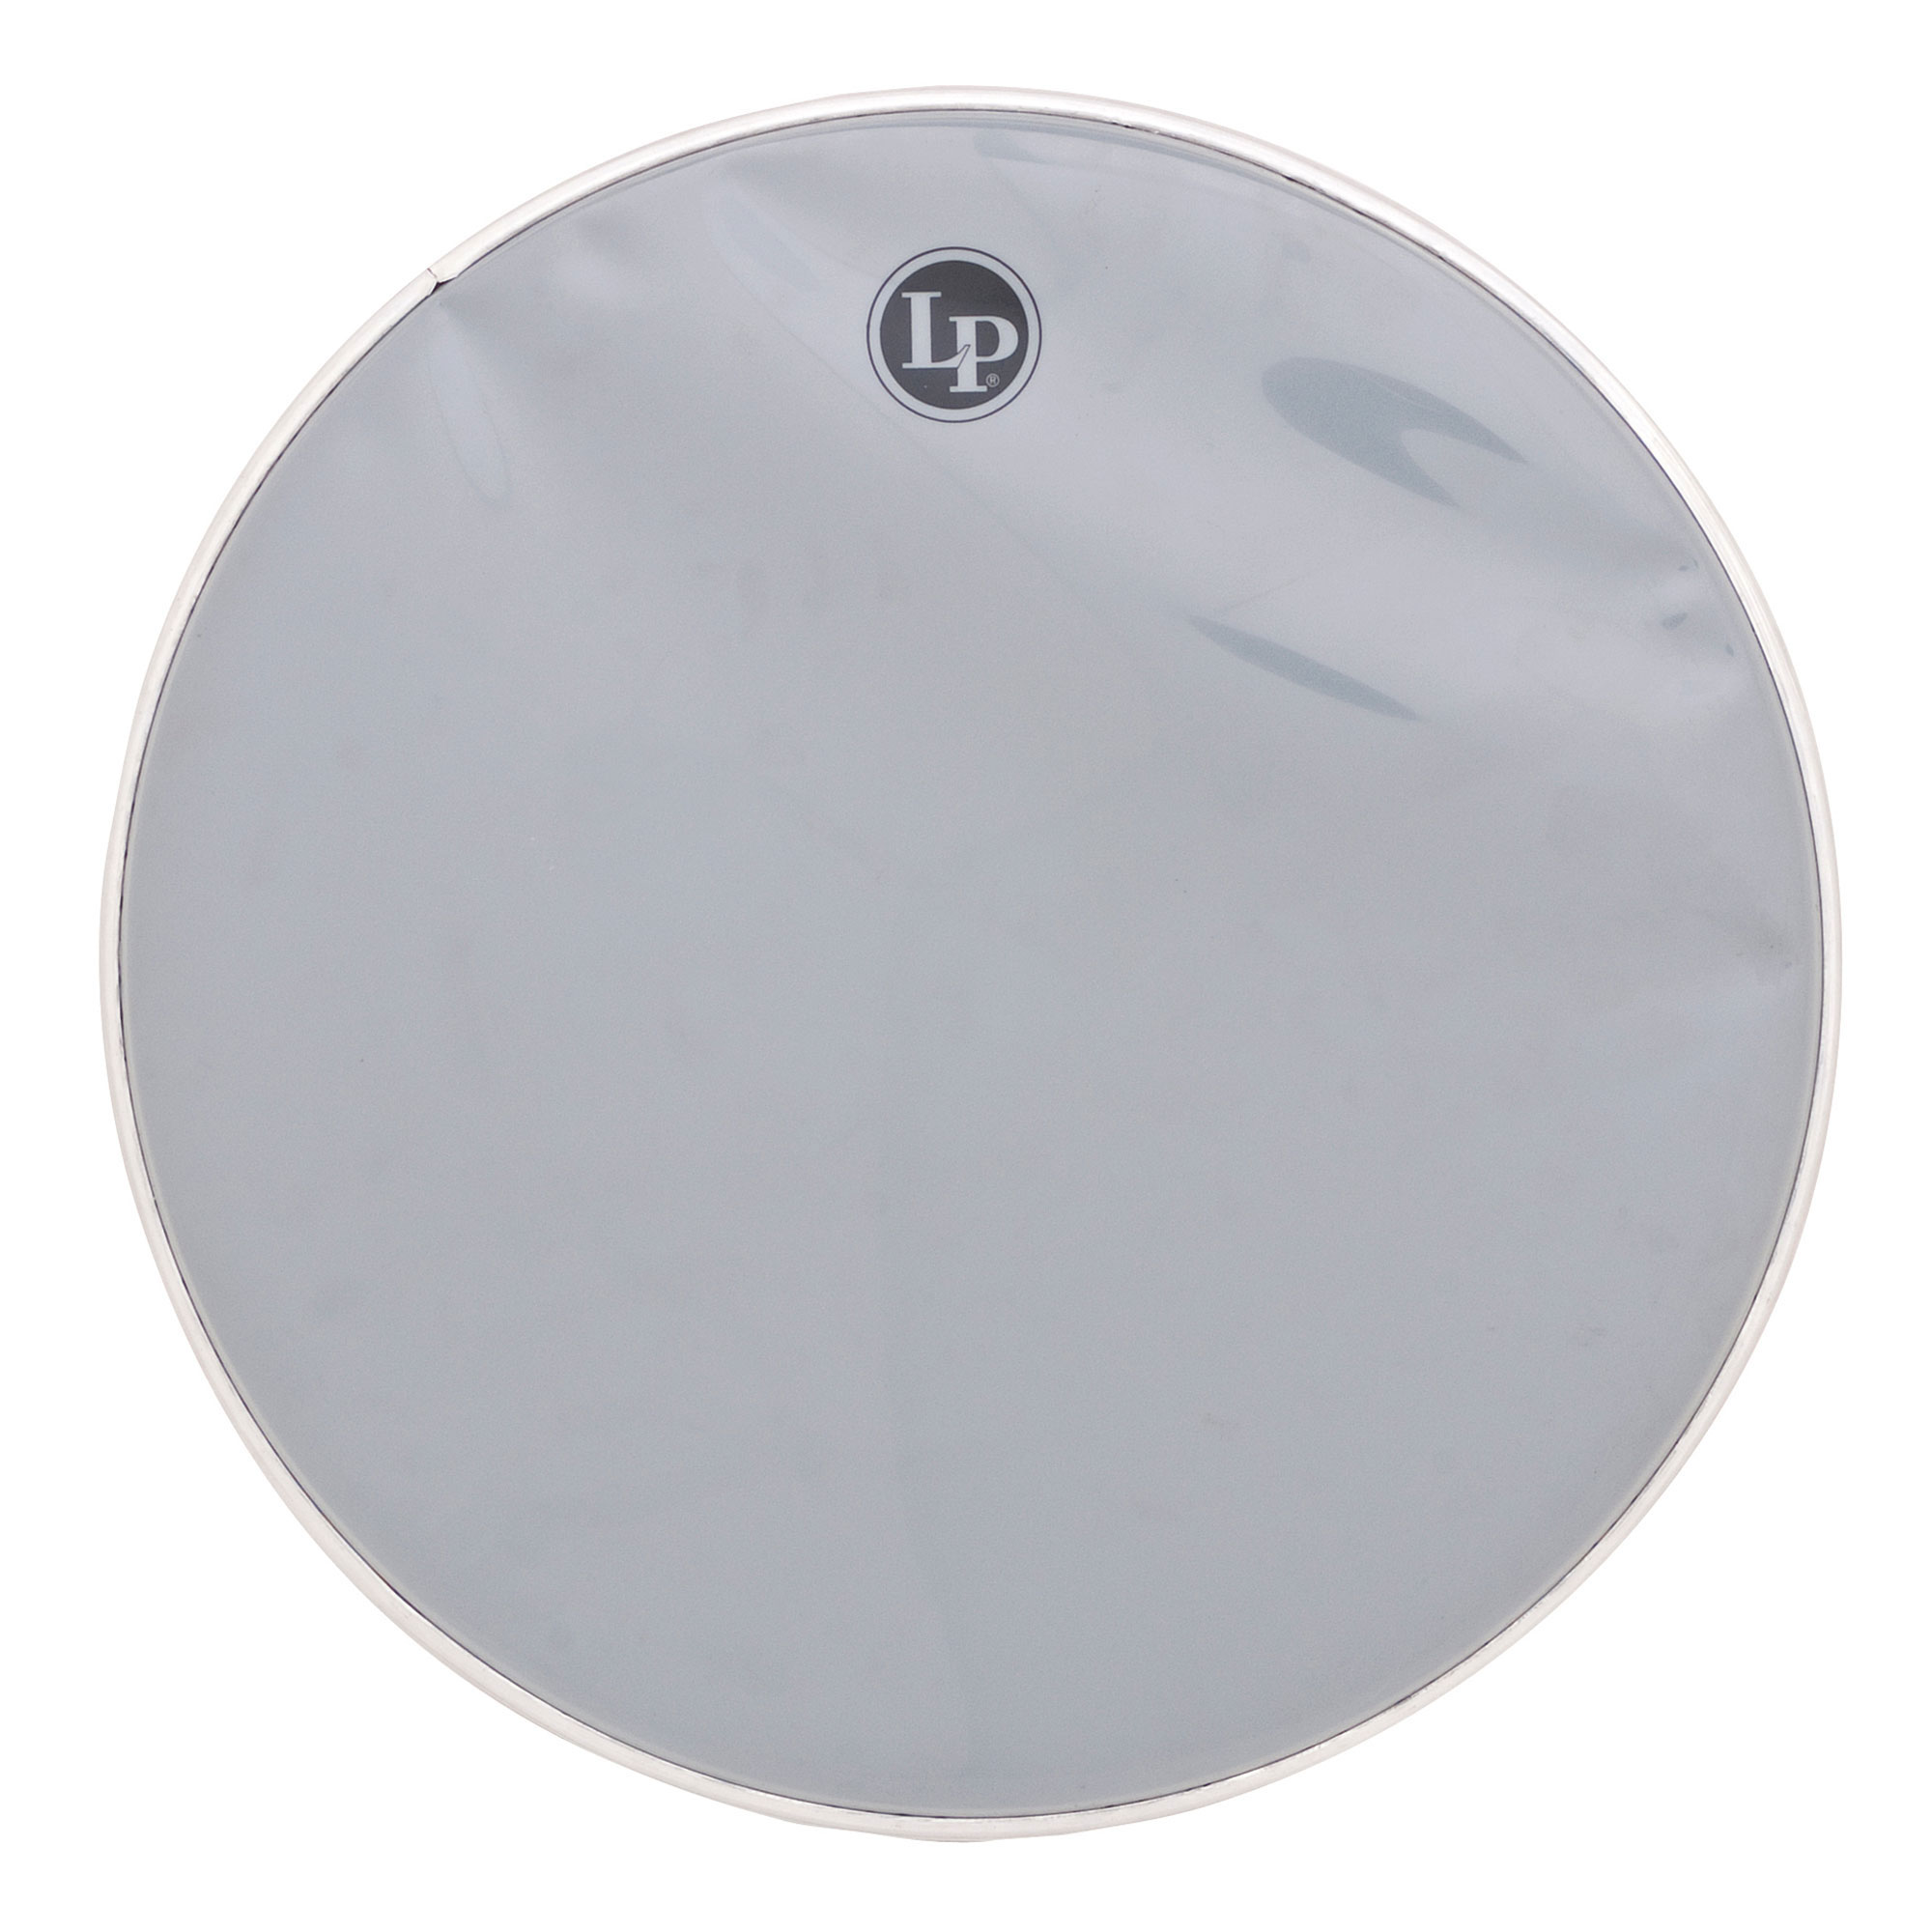 "LP 9 1/4"" Plastic Timbale Head"